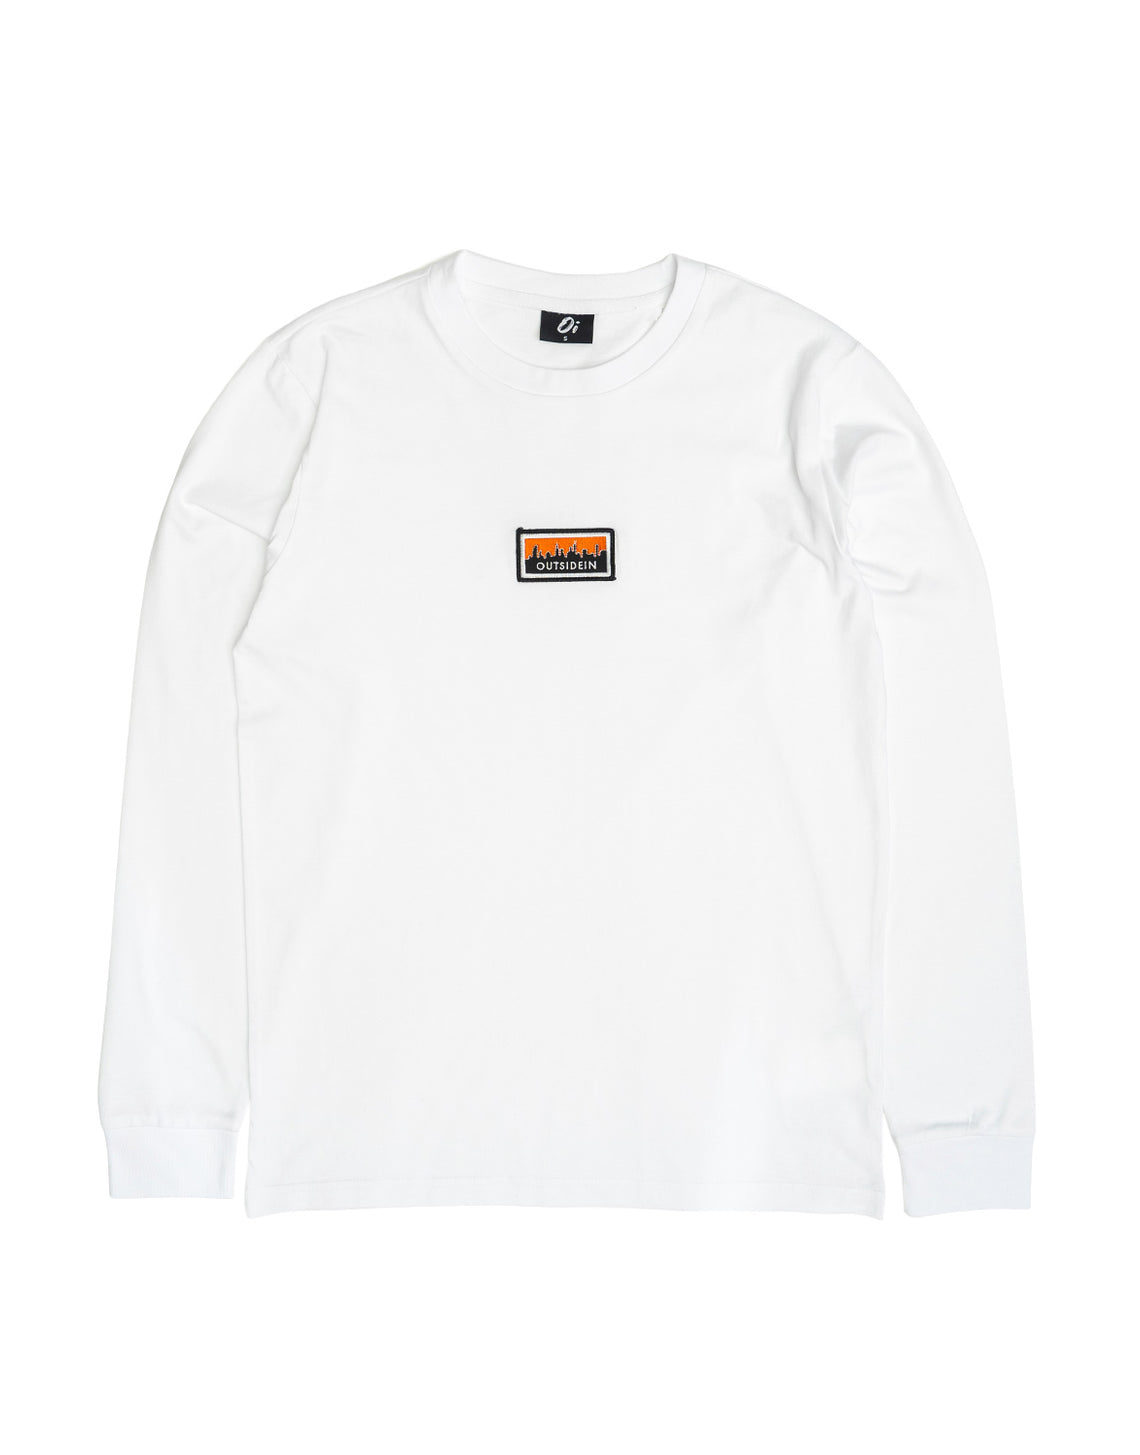 Cityscape Long Sleeve T-Shirt White - OutsideIn